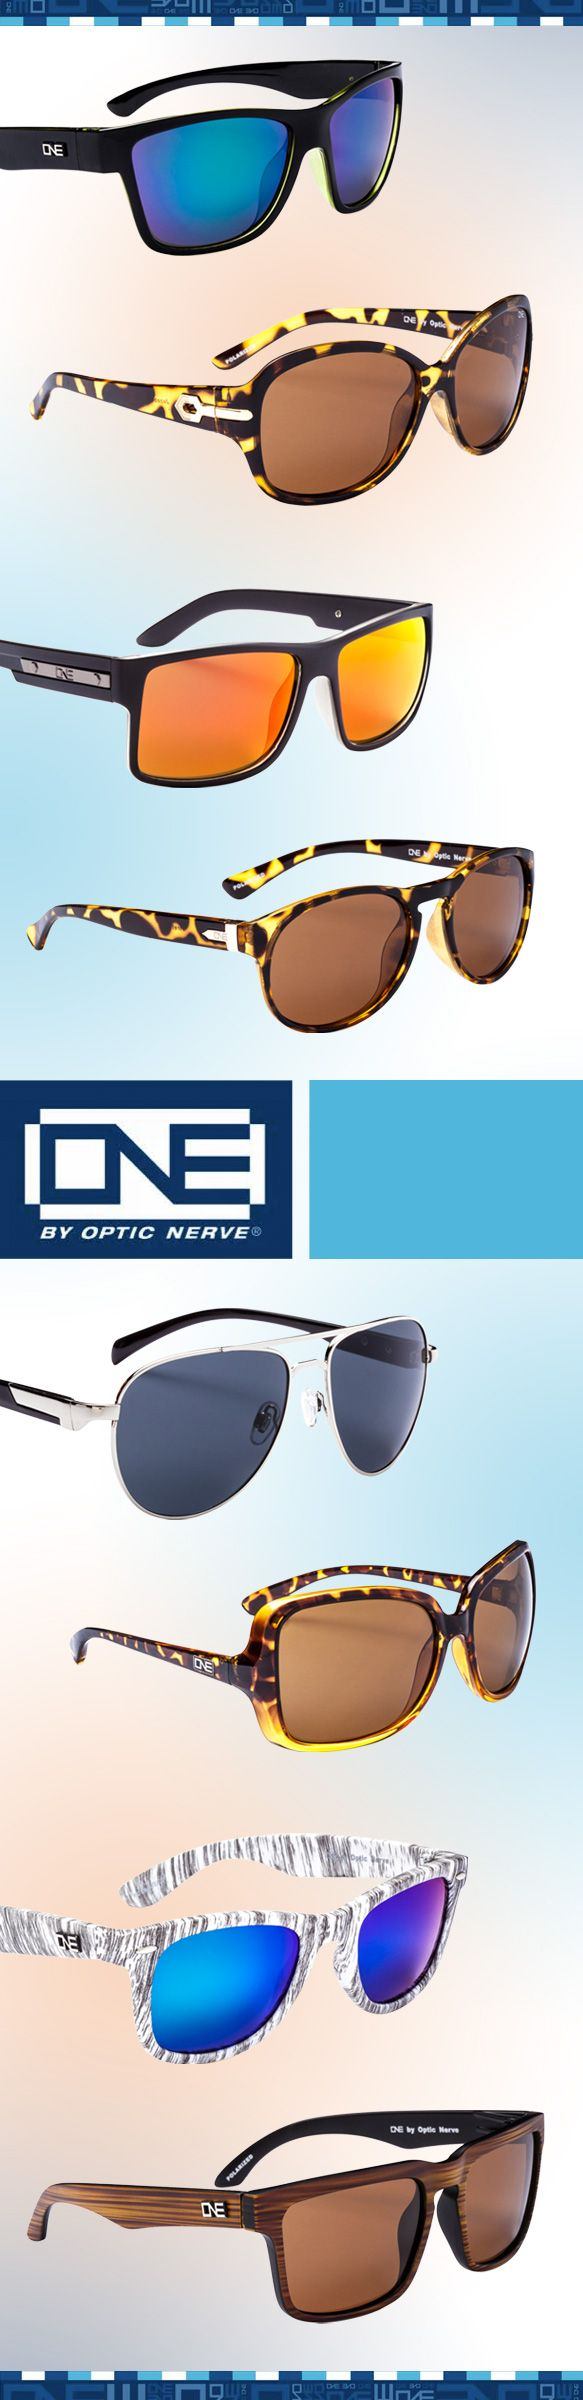 Introducing ONE by Optic Nerve: http://eyecessorizeblog.com/?p=6081: Optical Nerve